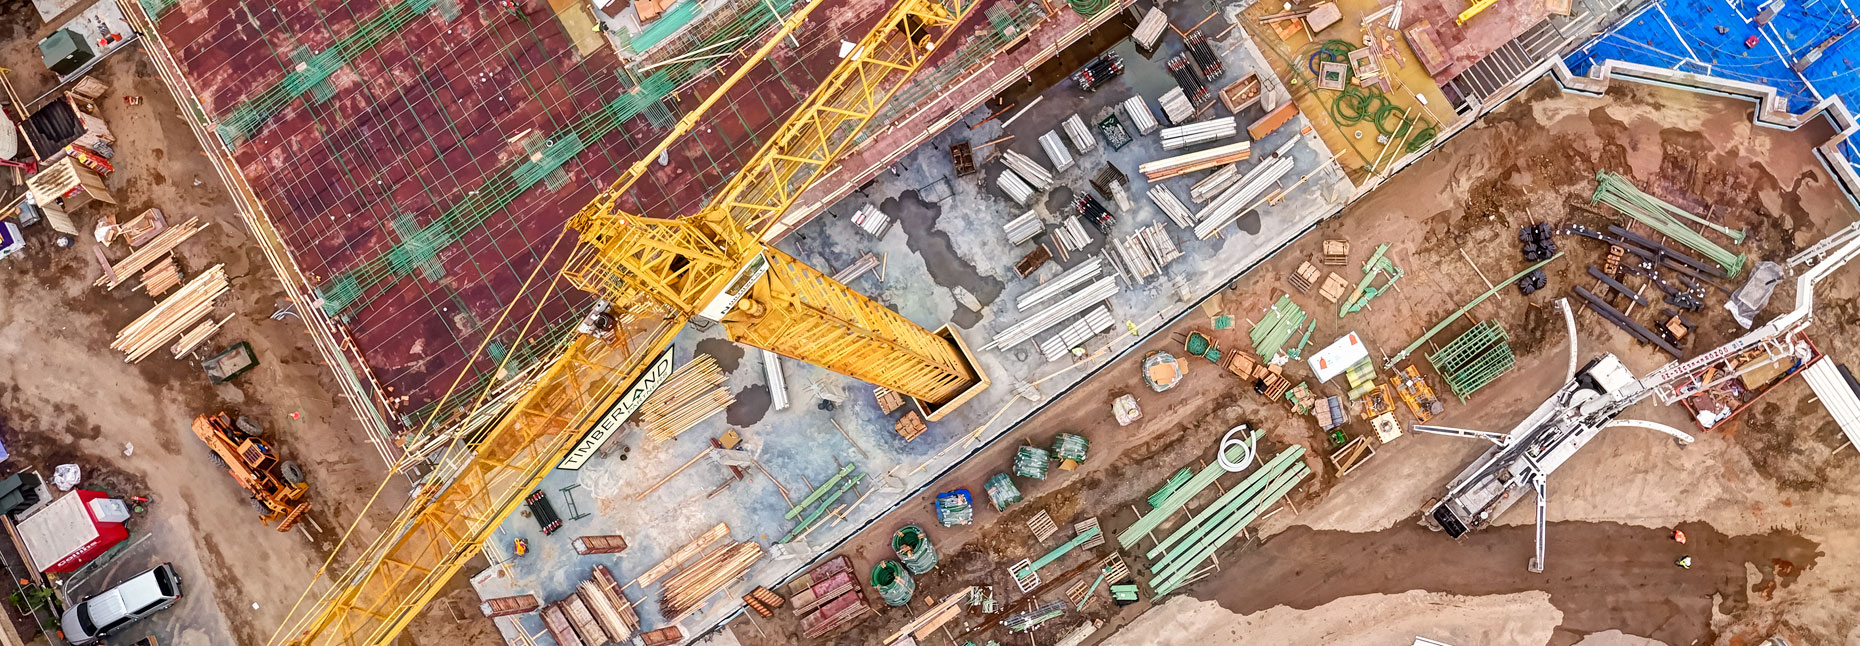 Construction site/drone/crane/dynamic/location photography